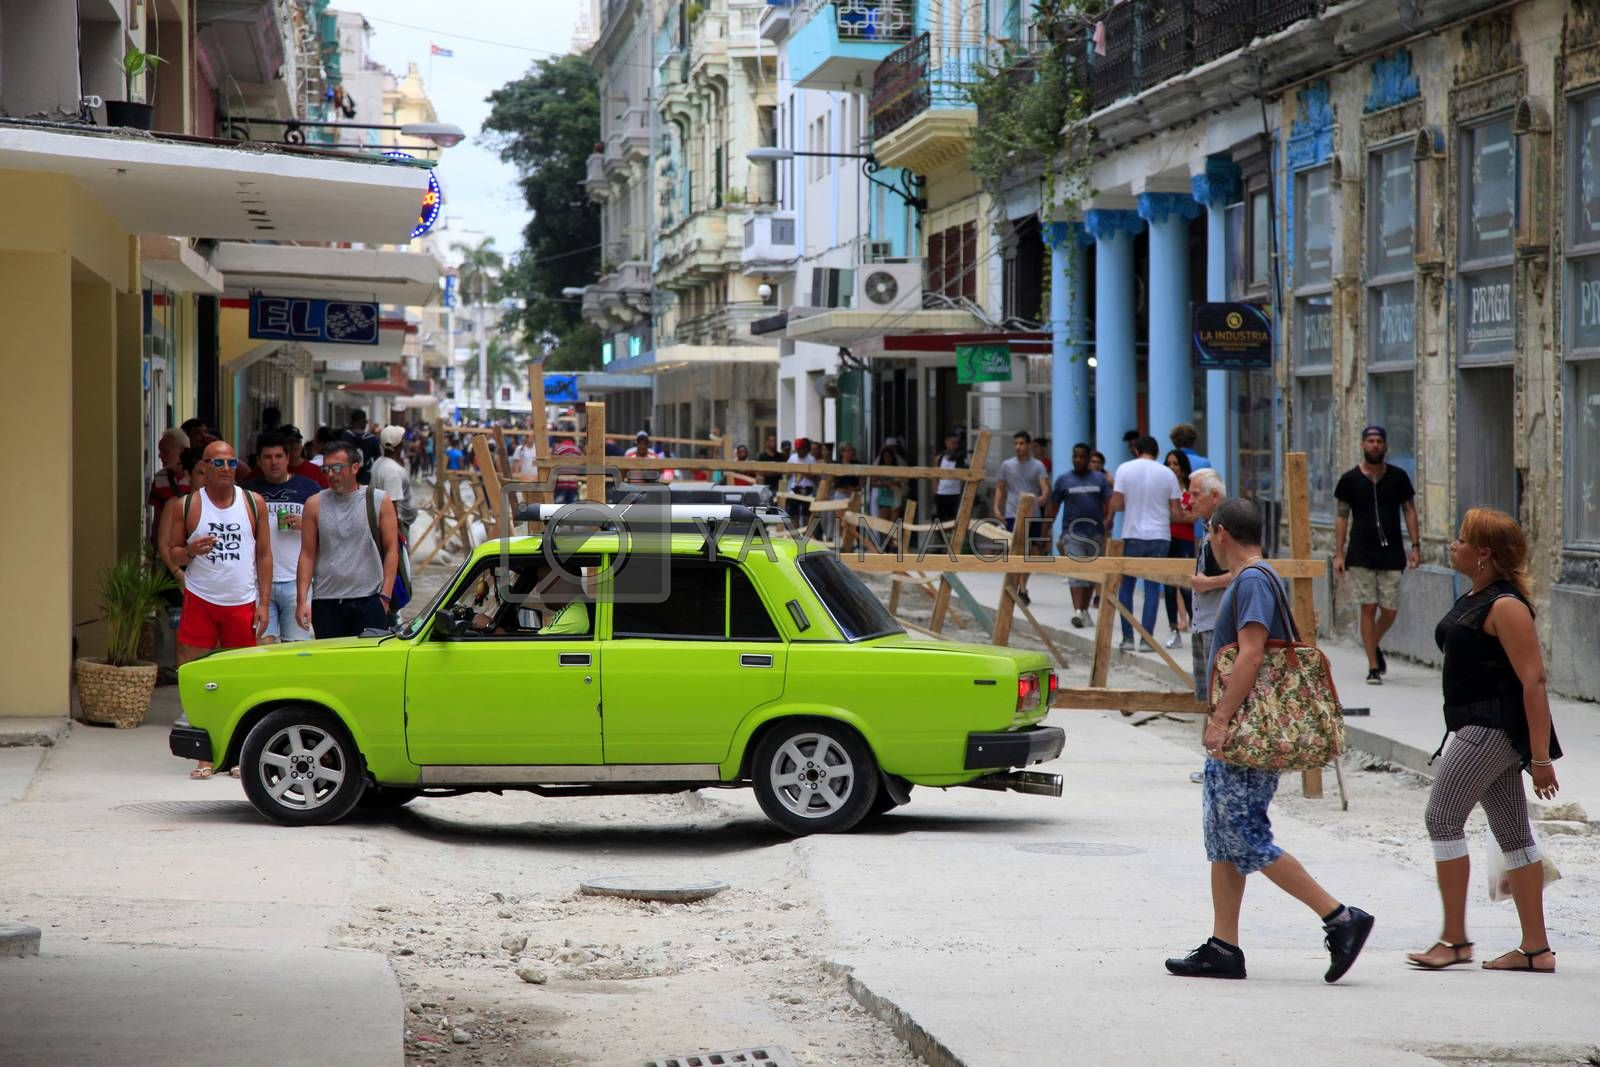 Havana, Сuba - January 10, 2019: Vintage cars moving on the streets of colorful Havana. A great variety of old cars exist In Cuba. On the streets cars from the first half of the 20th century can be found in magnificent conditions, which takes back in history and make the old atmosphere of the cities.